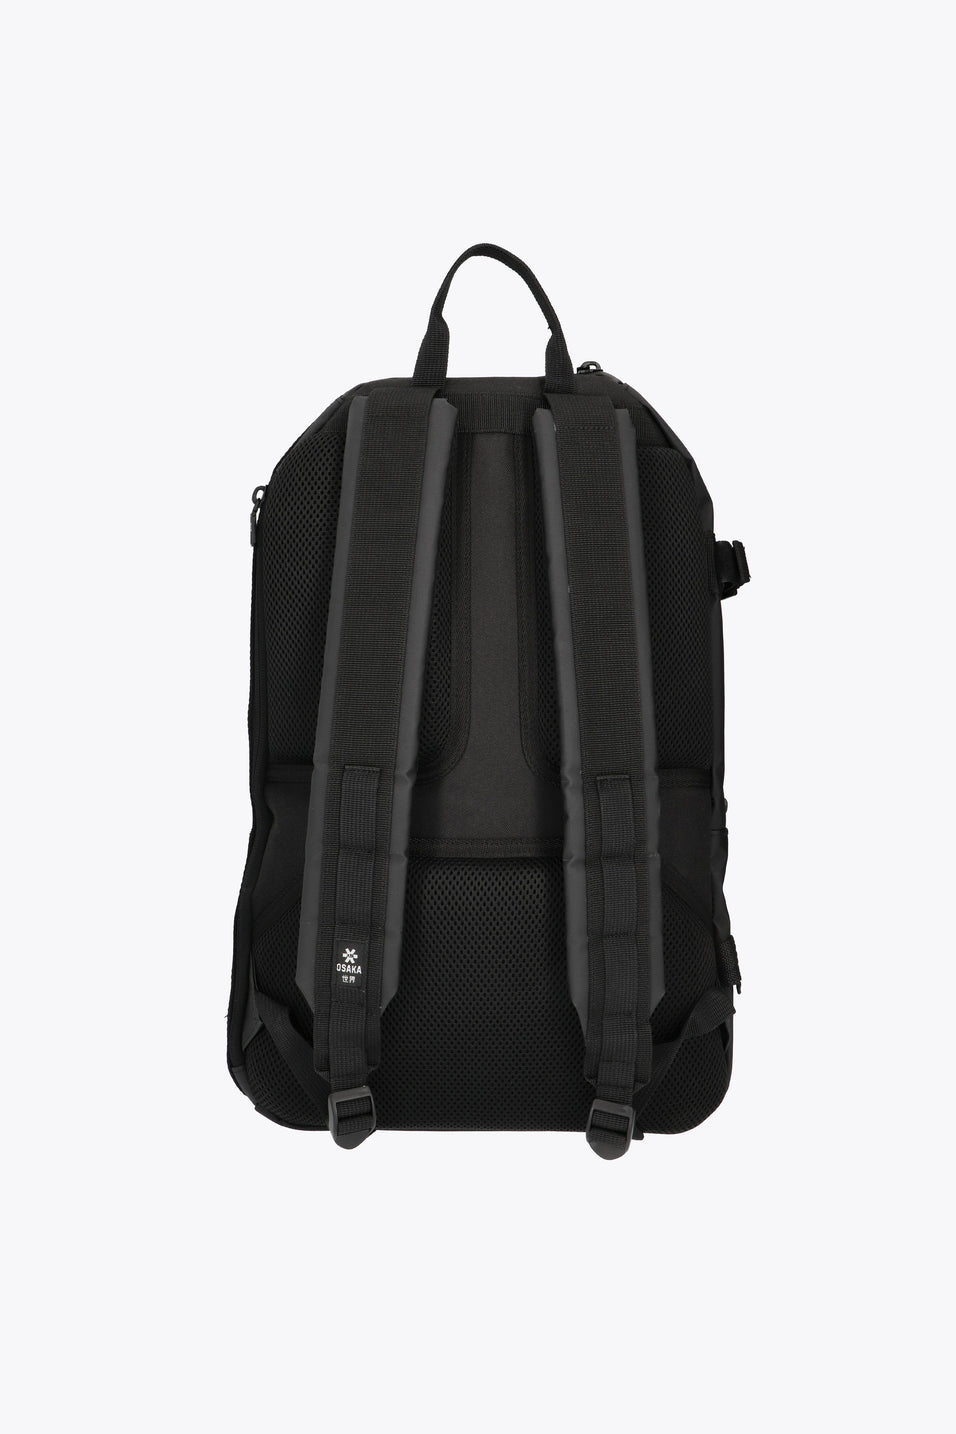 Pro Tour Backpack Large - Iconic Black